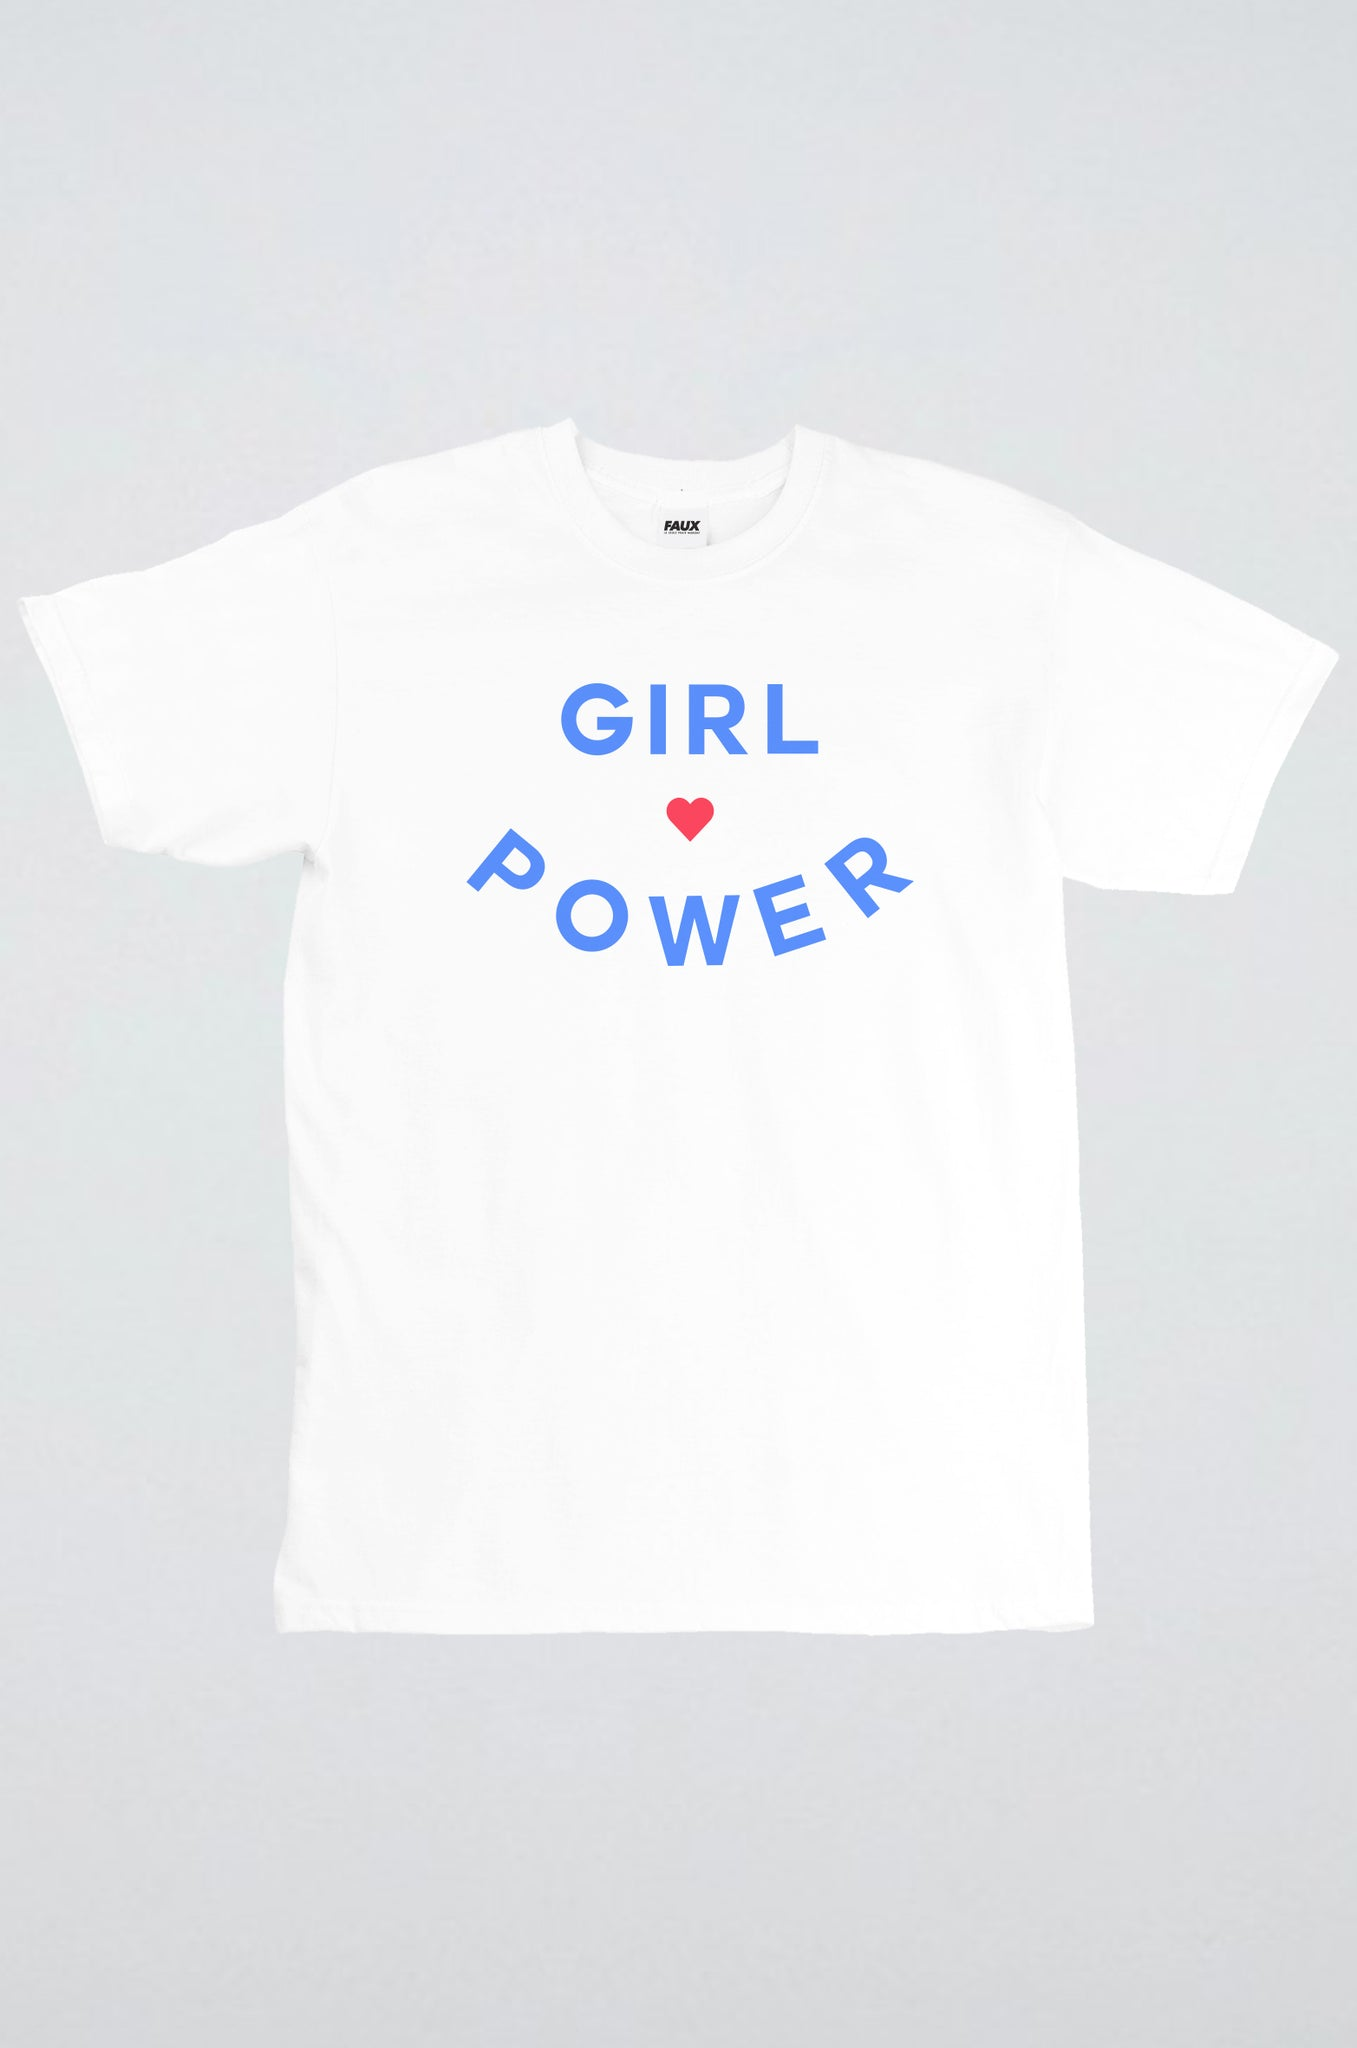 Girl power